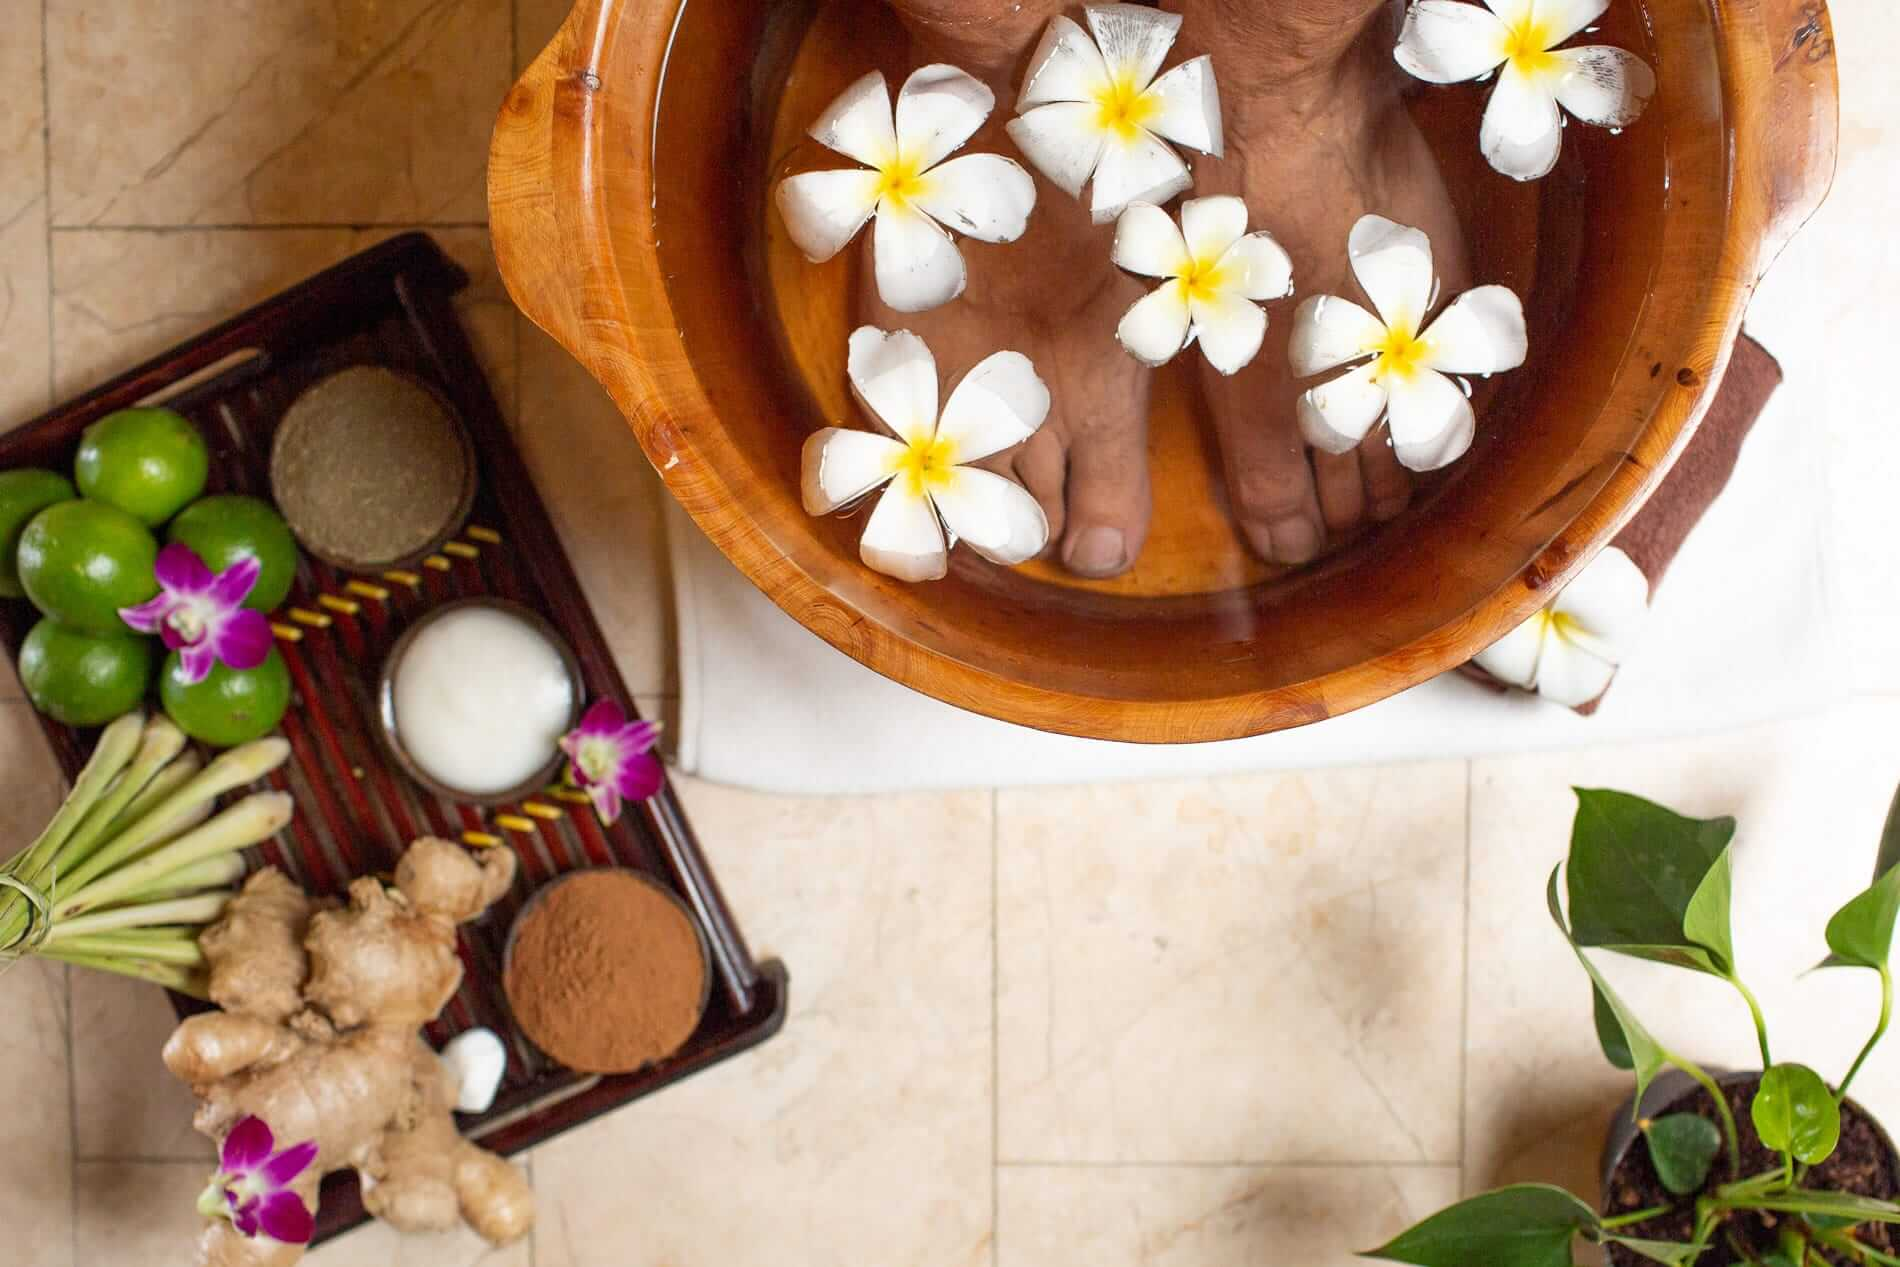 relaxing sore feet with a lavender foot bath